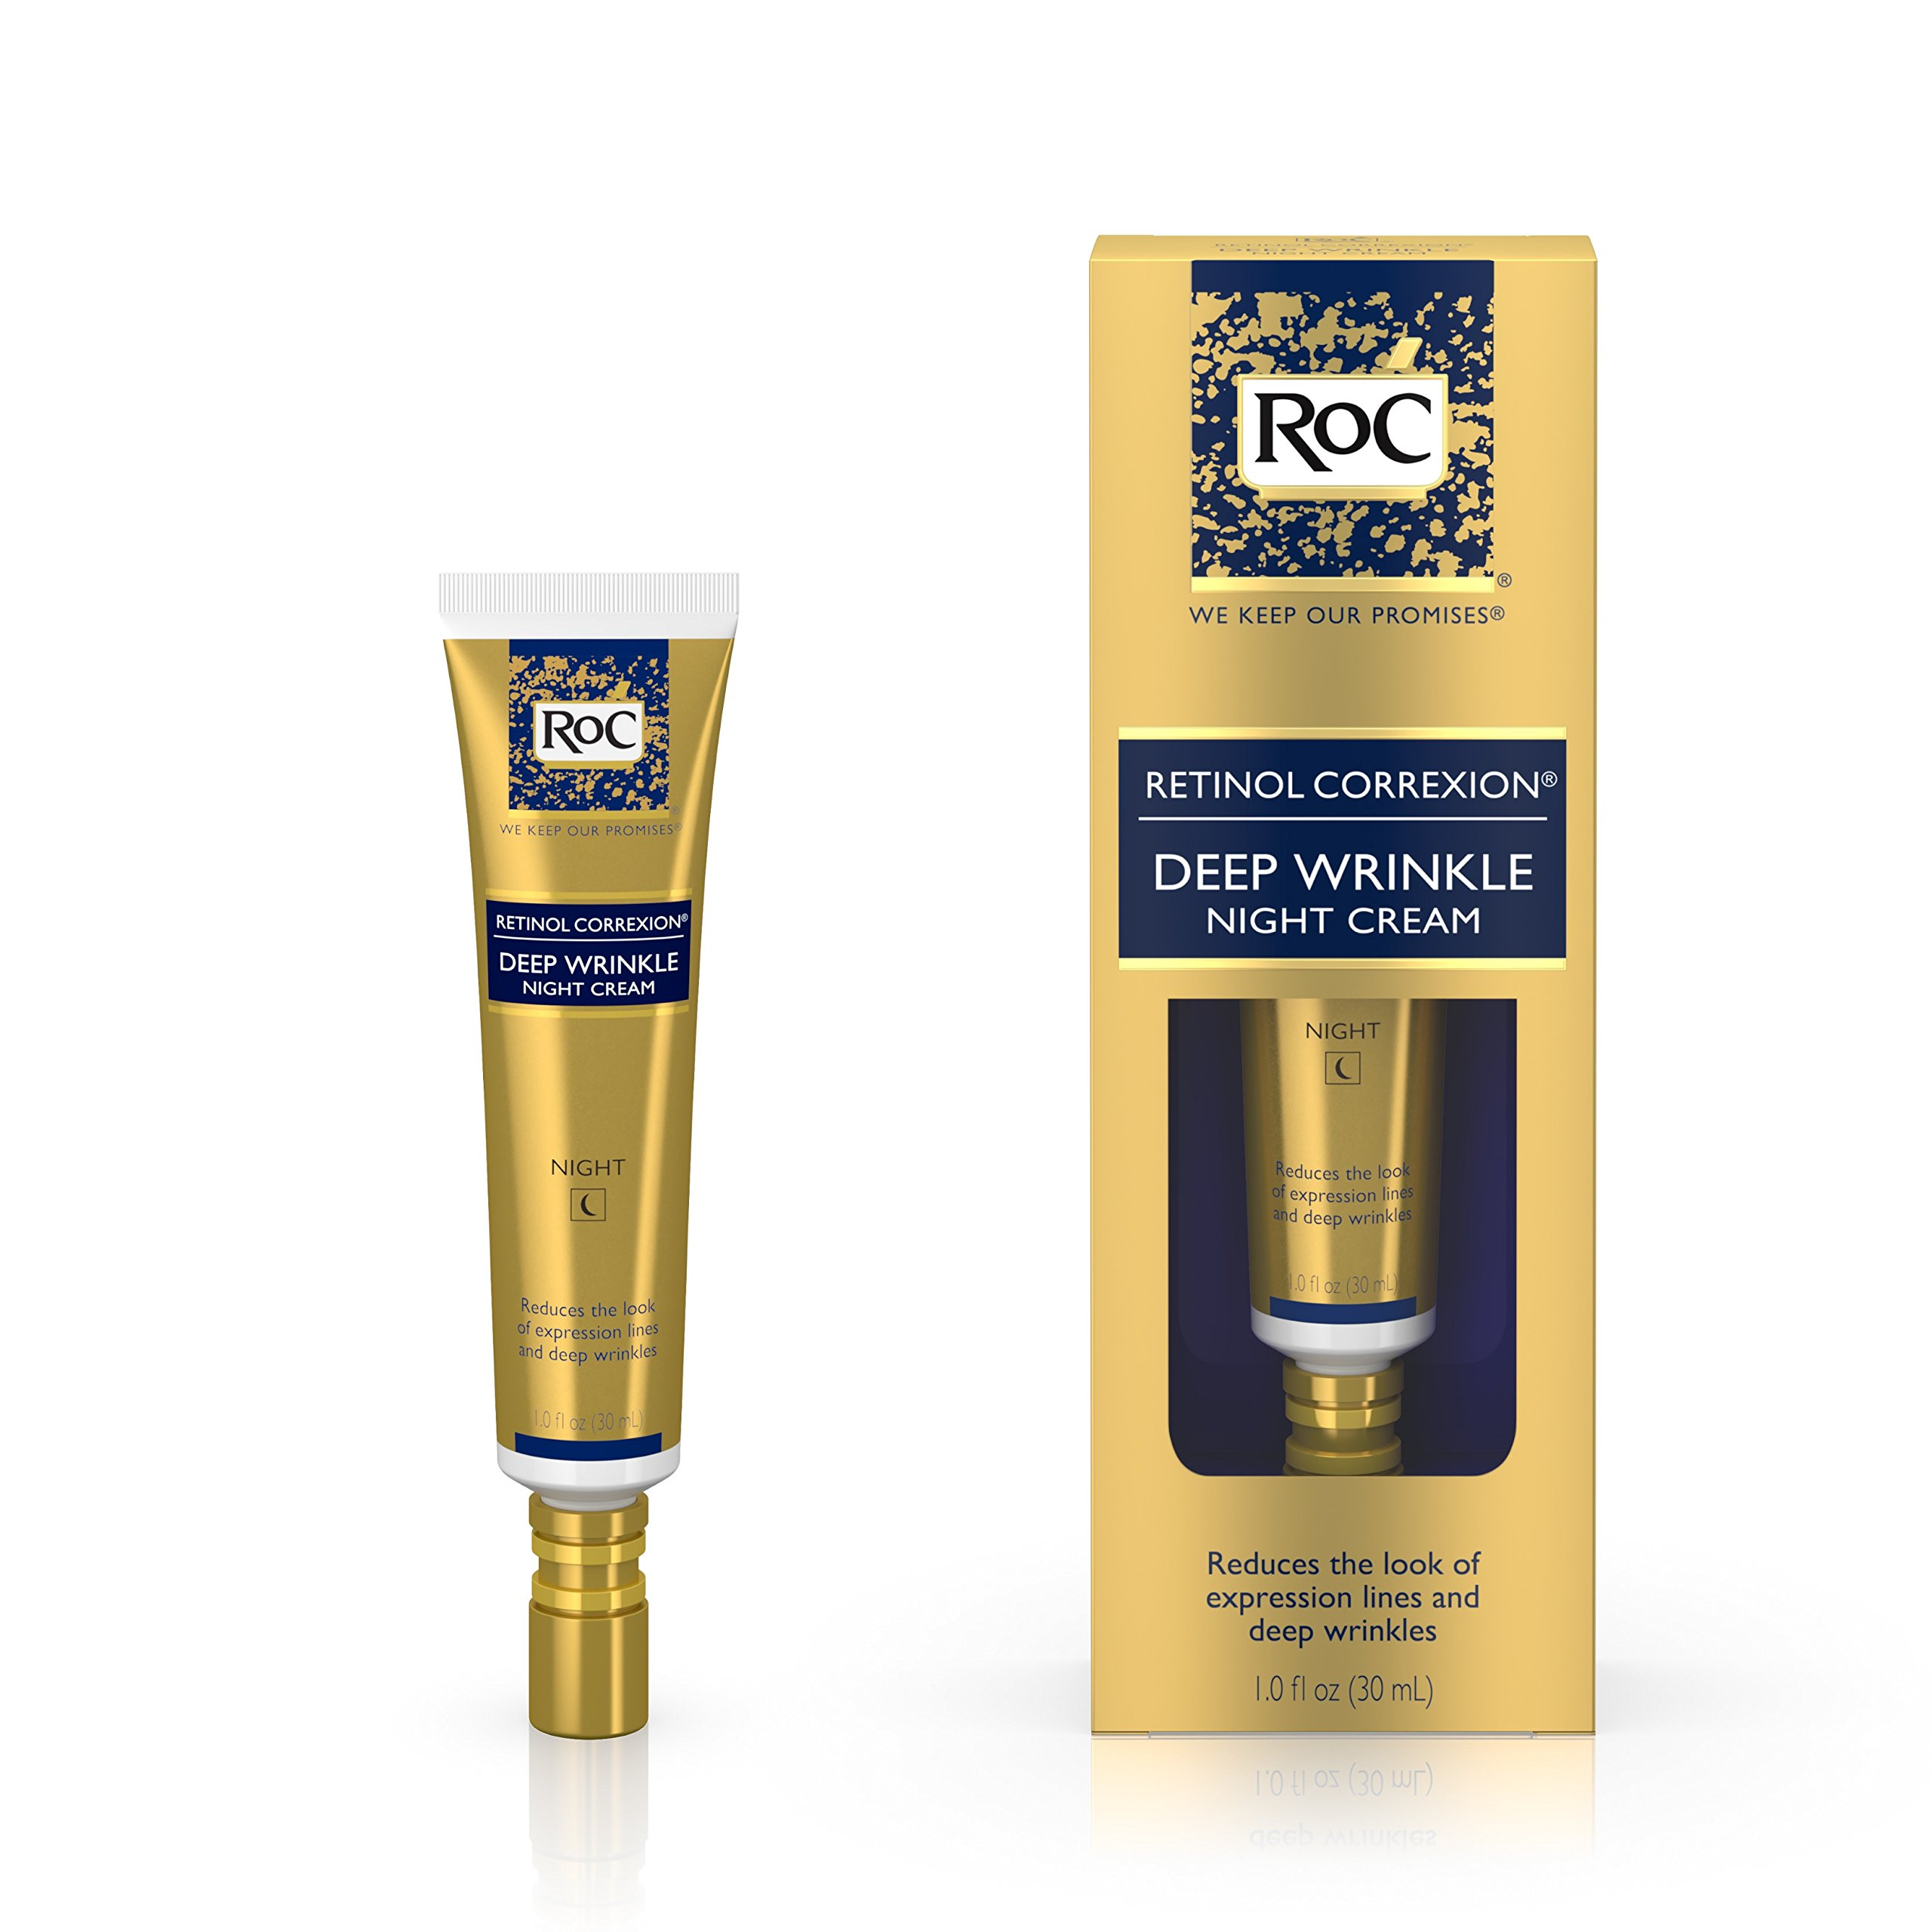 RoC Retinol Correxion Deep Wrinkle Anti-Aging Retinol Night Cream, Oil-Free and Non-Comedogenic, 1 oz by RoC (Image #12)